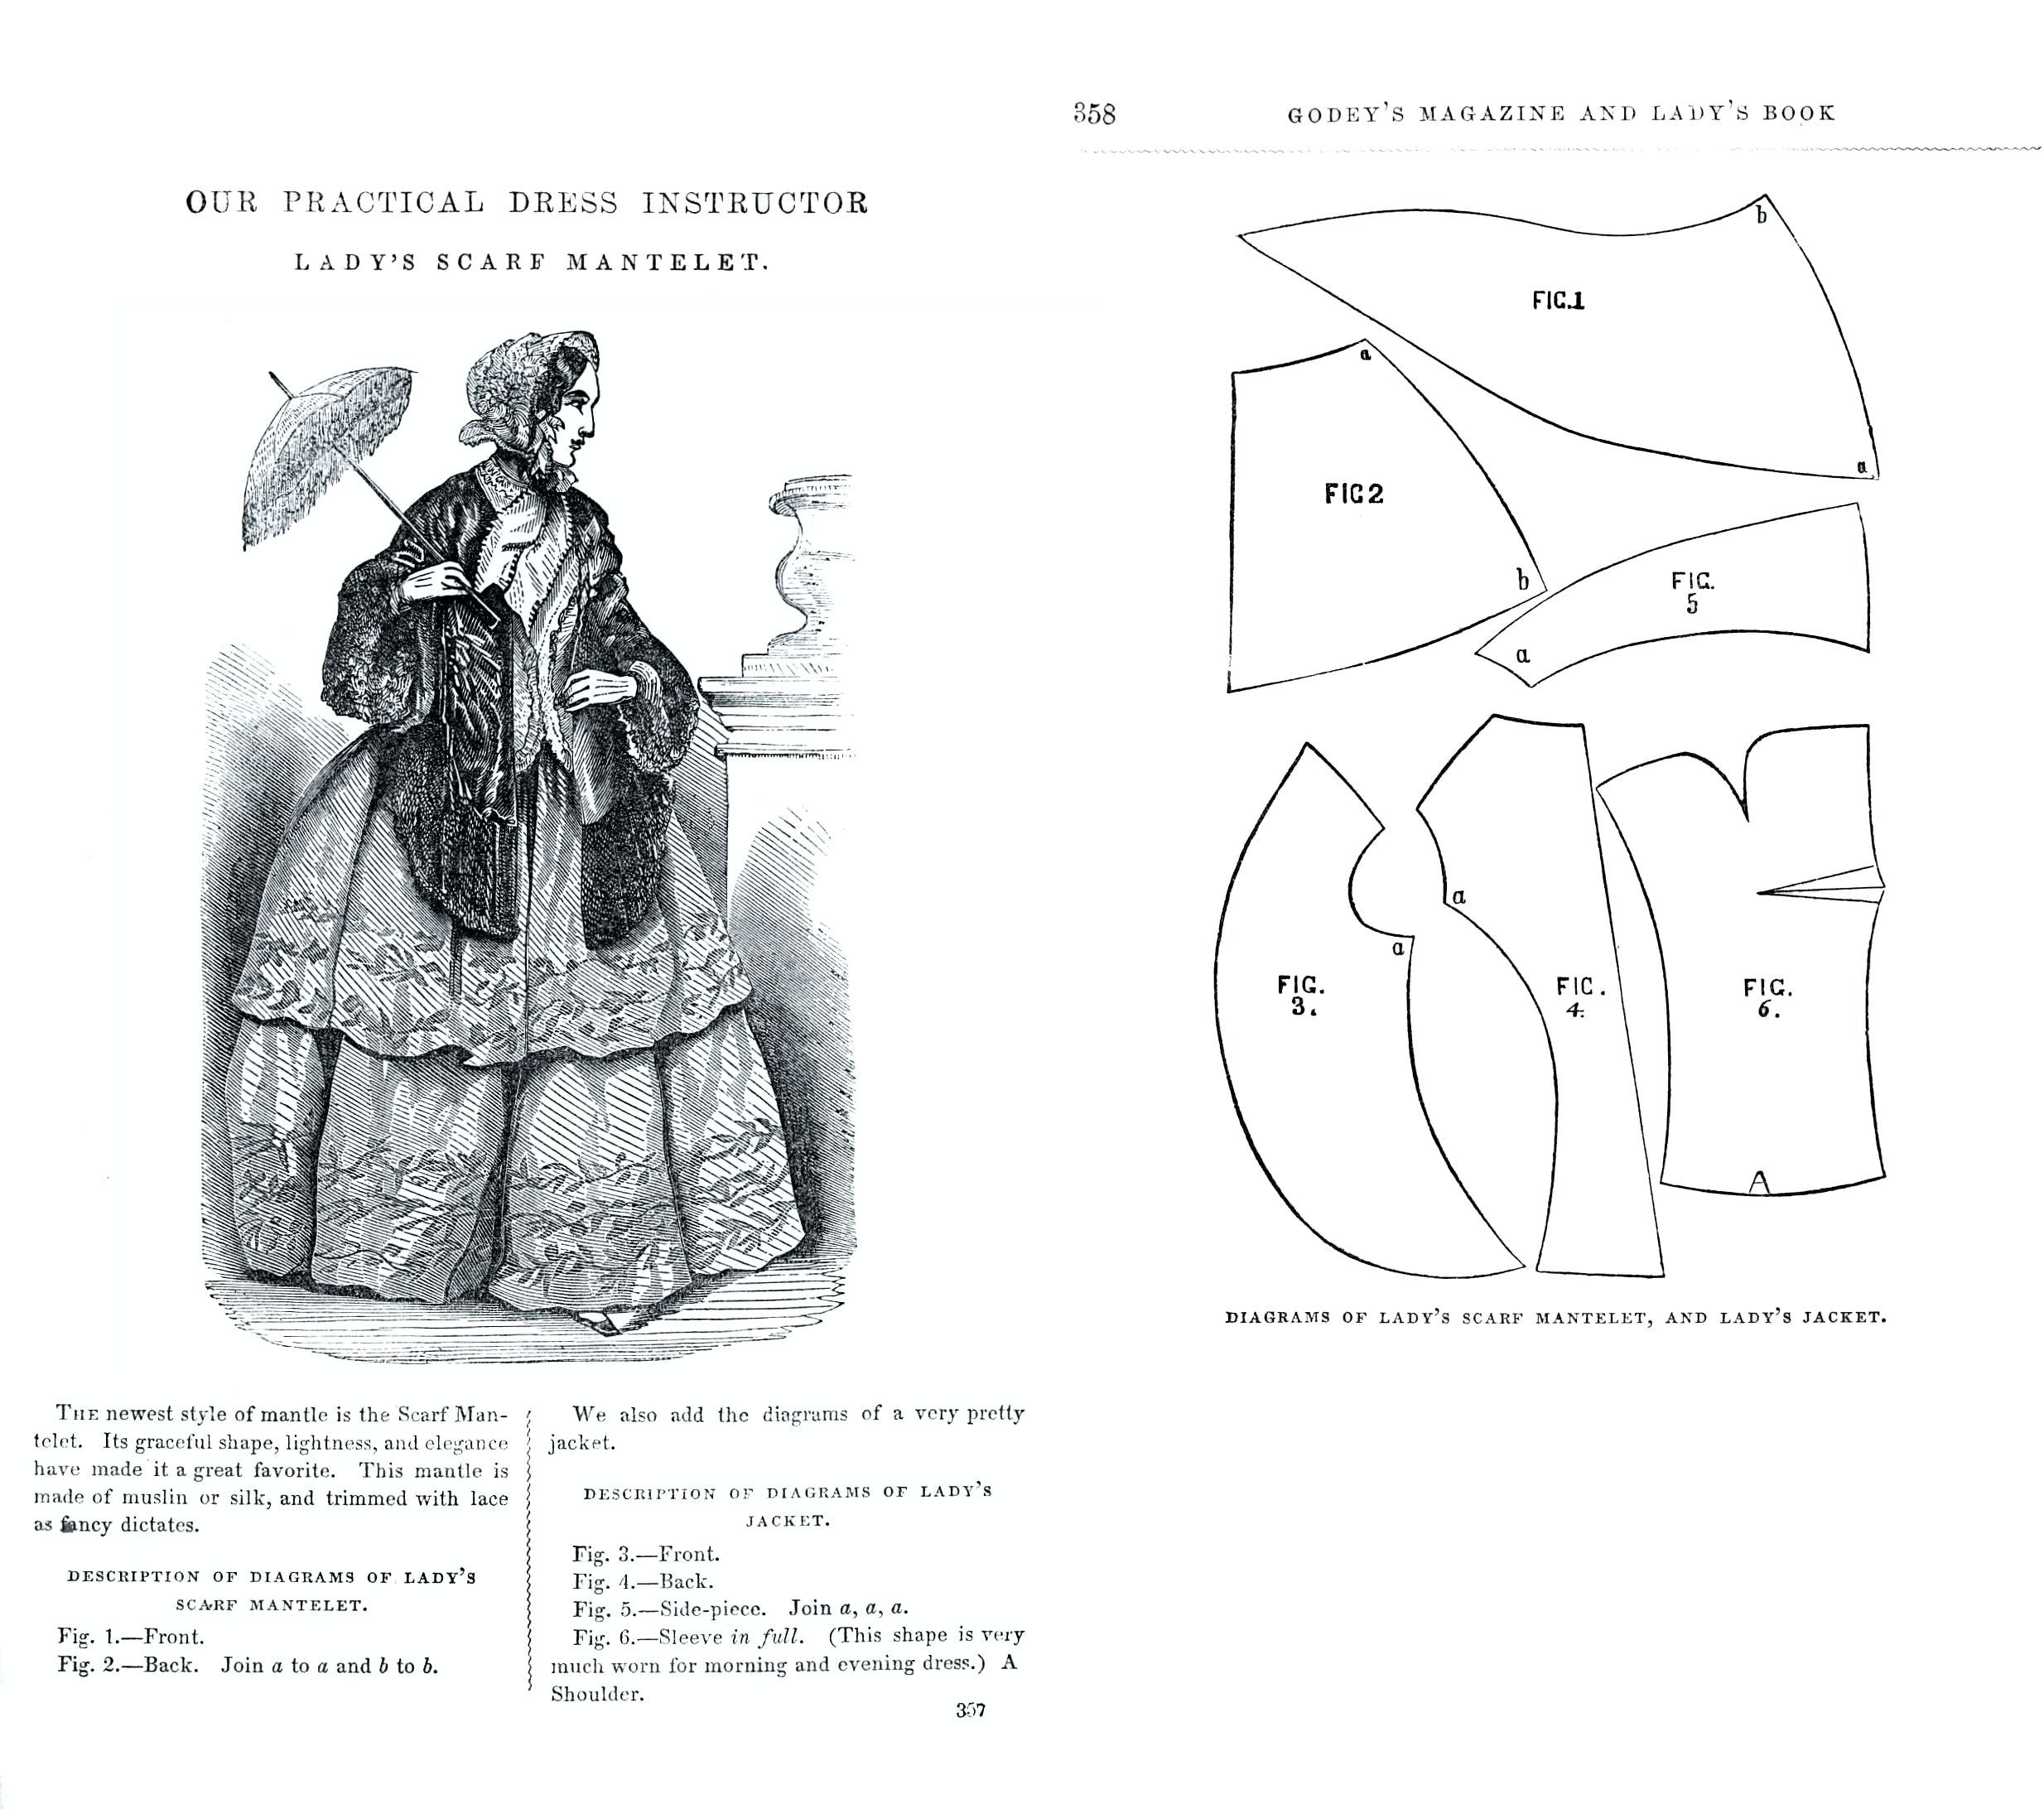 1854 Lady's Scarf Mantelet sewing pattern from Godey's